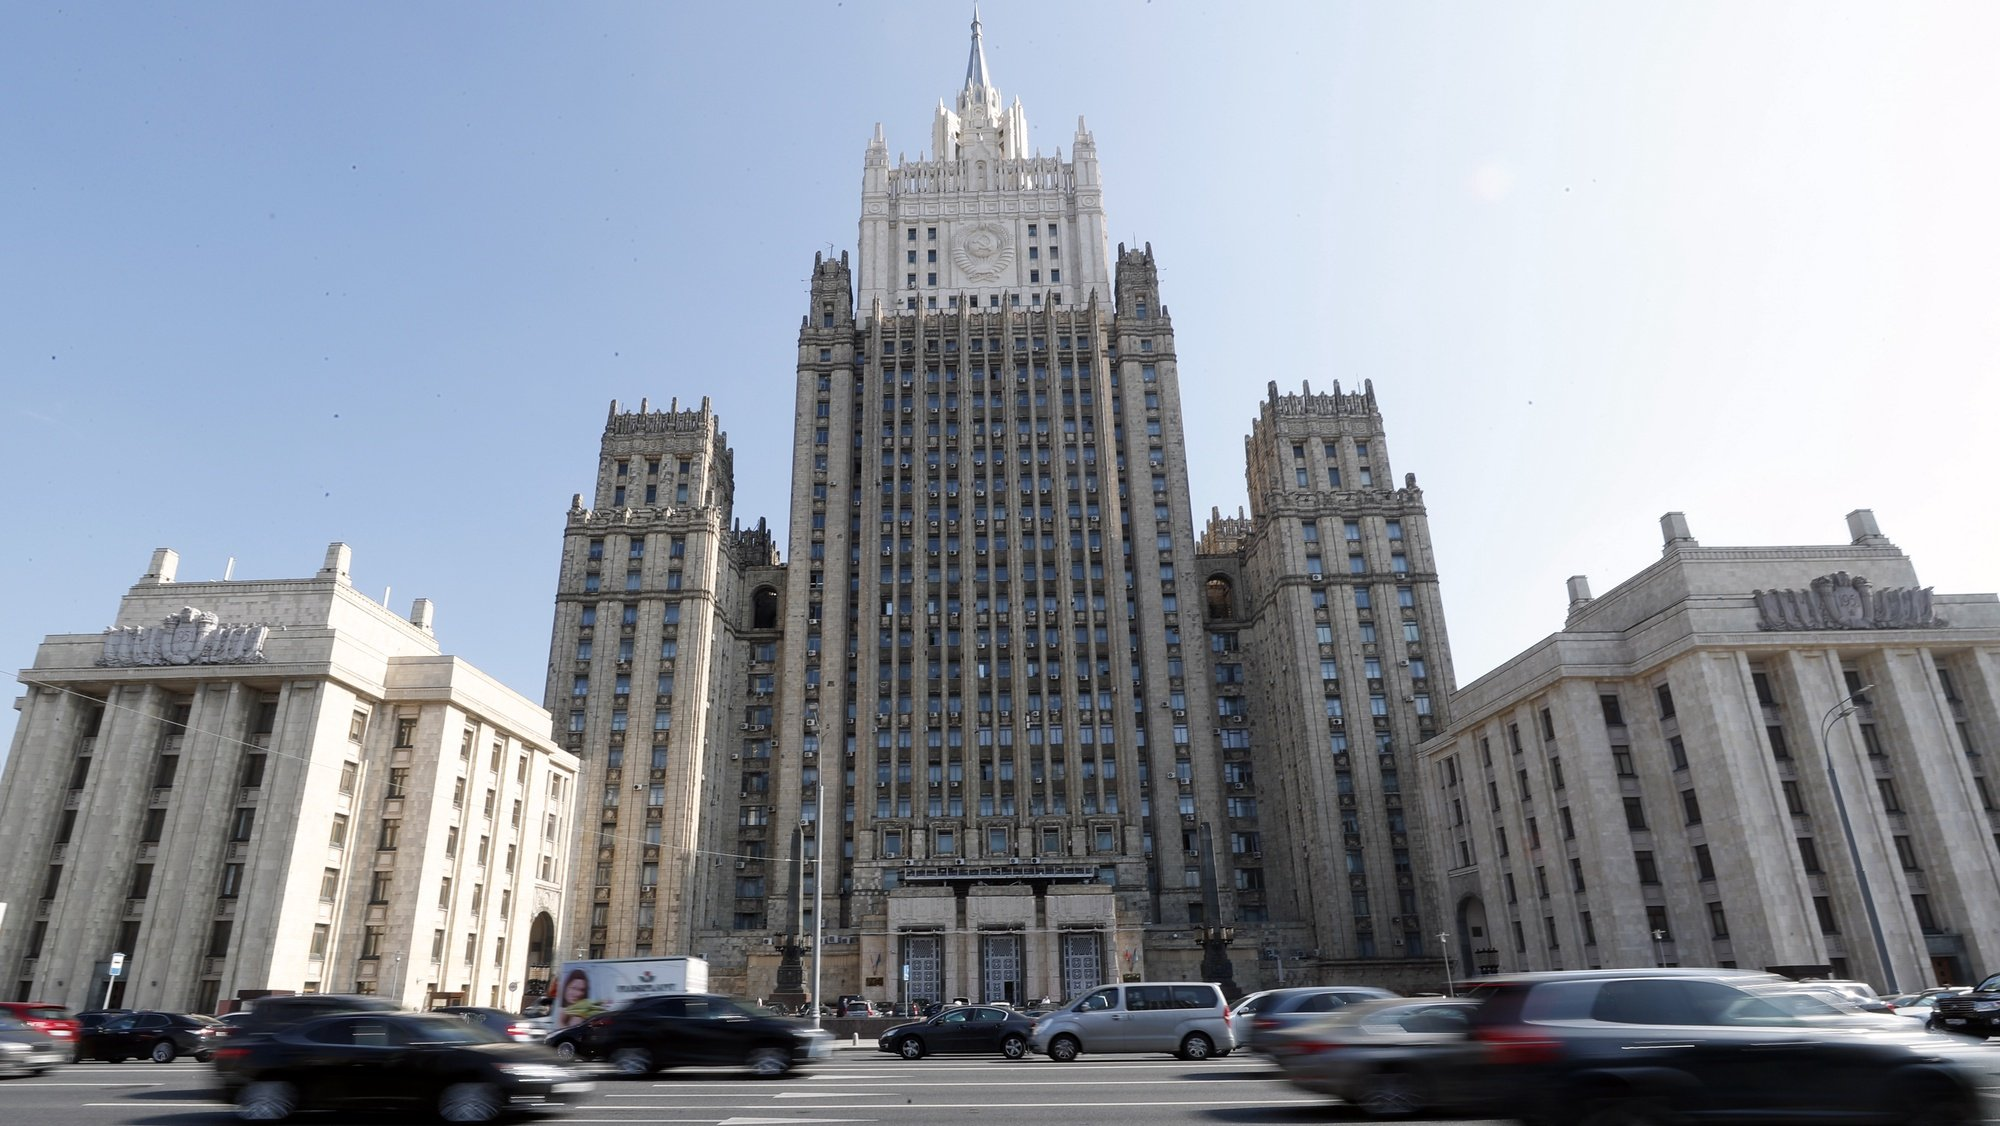 epa07002953 A view of Russian Foreign Ministry building in Moscow, Russia, 07 September 2018. As media reported, the Russian Foreign Ministry spokesperson Maria Zakharova said at a press briefing on 07 September 2018, the United States and the United Kingdom are the principal beneficiaries of the Salisbury incident. The former Russian spy Sergei Skripal aged 66 and his daughter Yulia, aged 33, were found suffering from extreme exposure to a rare nerve agent in Salisbury southern England, on 04 March 2018.  EPA/MAXIM SHIPENKOV